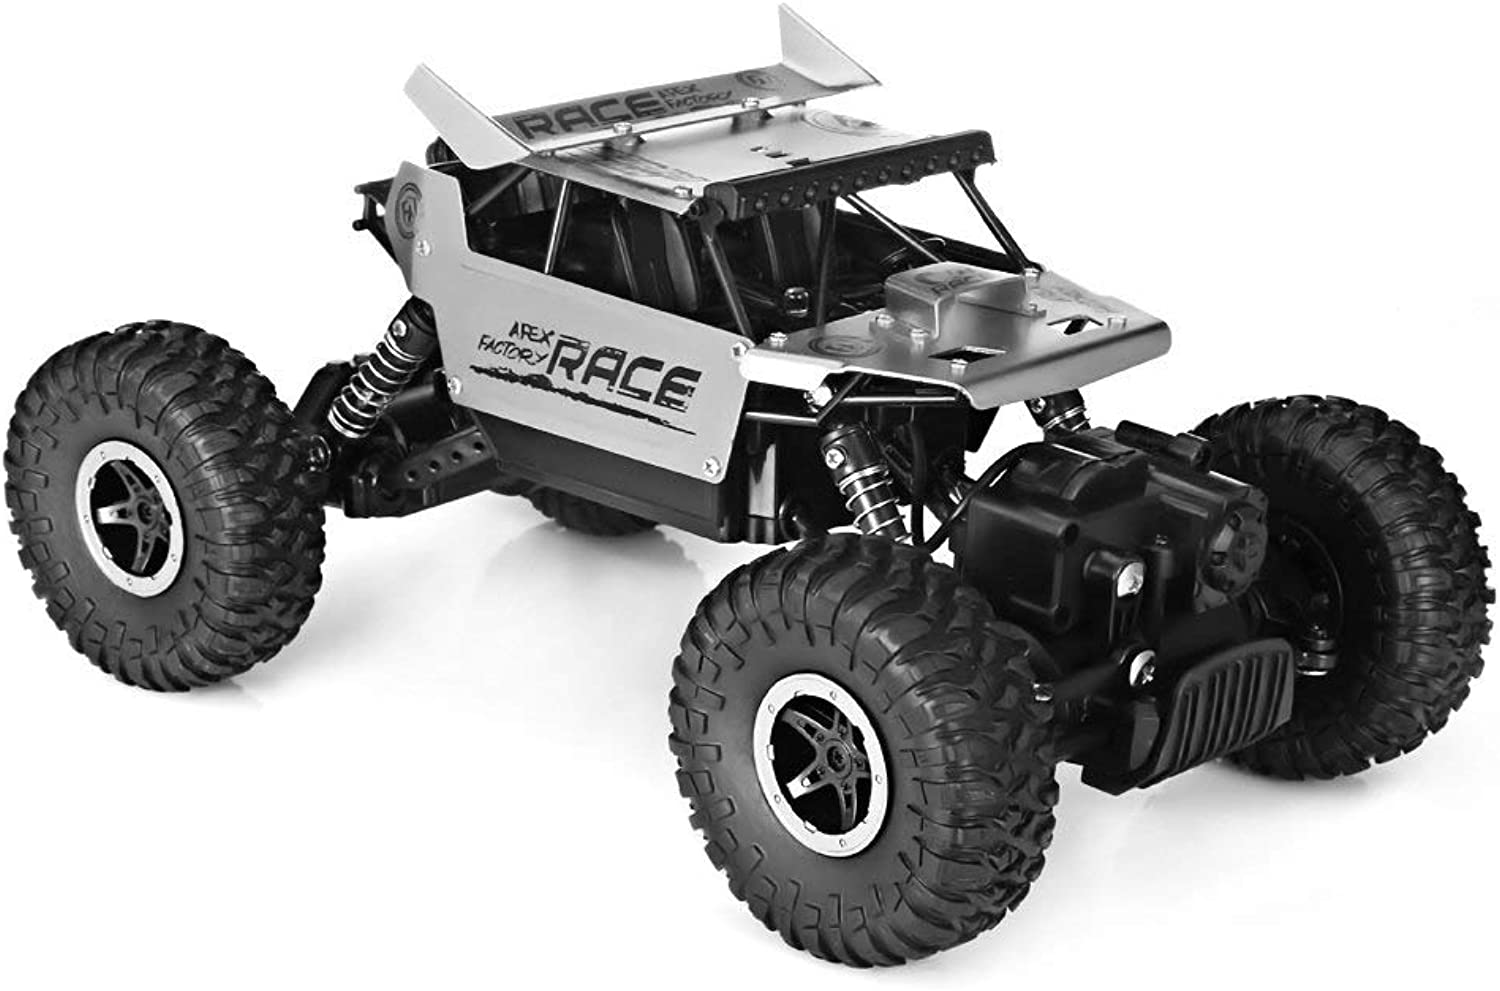 Generic High Speed RC Car 1 18 Alloy 2.4G 4WD Crawler Remote Control Toy Cars On The Radio Drive OffRoad Climbing Rock Car Toy for Boy Silver